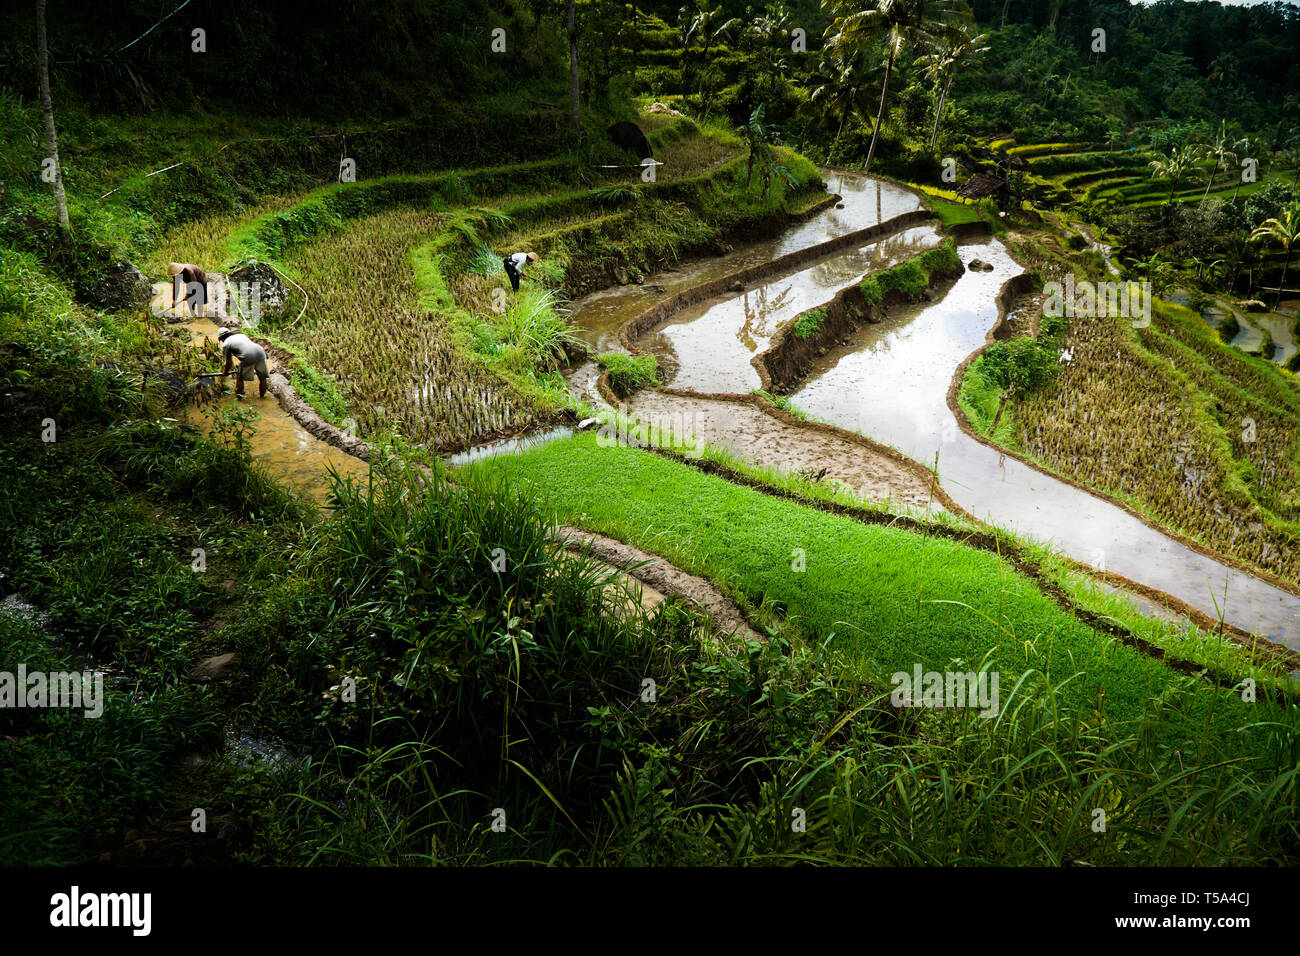 Aerial paddy field, Rice Terraces in Bali - Stock Image